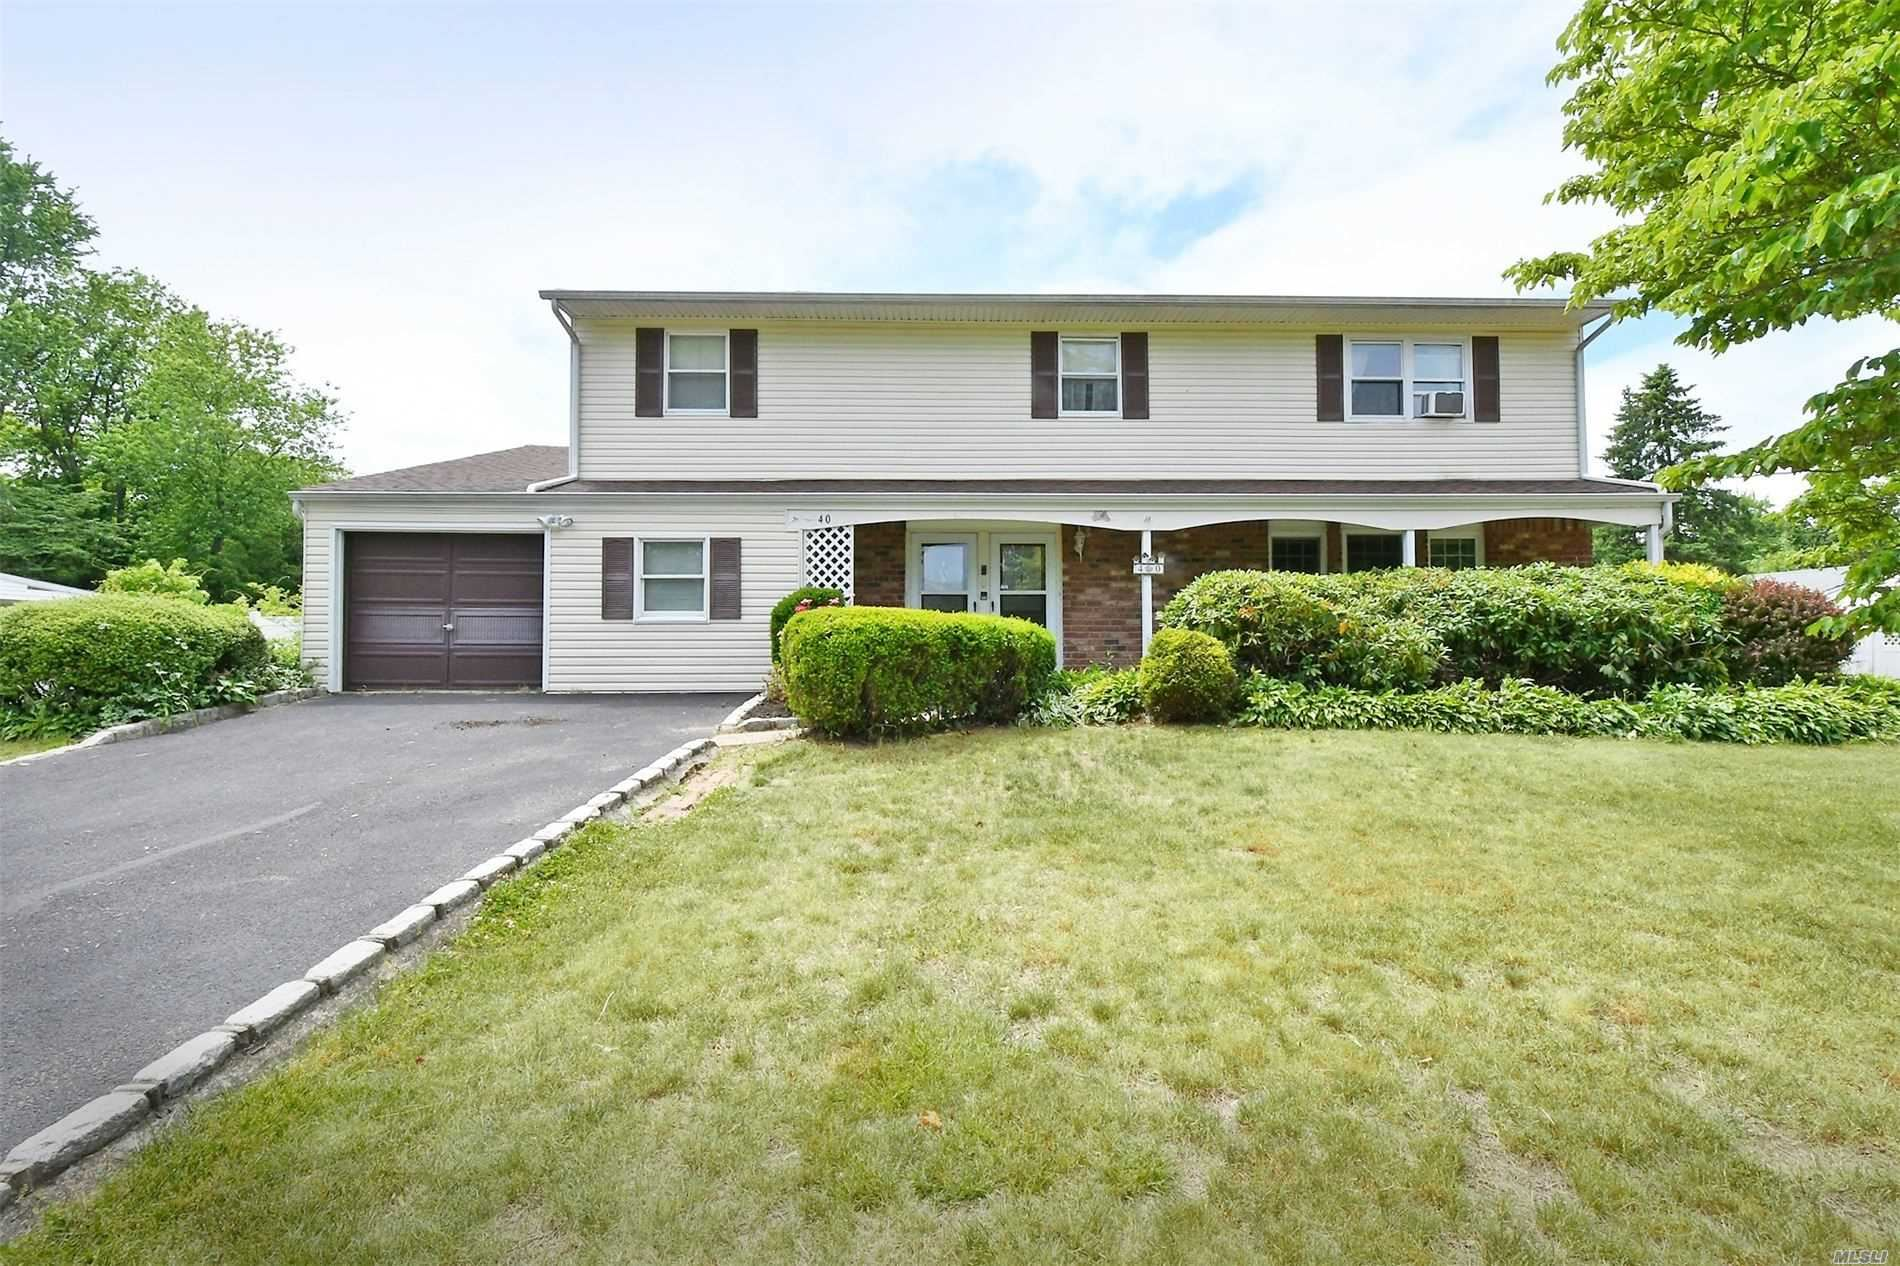 40 Nadine Lane, Port Jefferson Station, NY 11776 - MLS#: 3223579